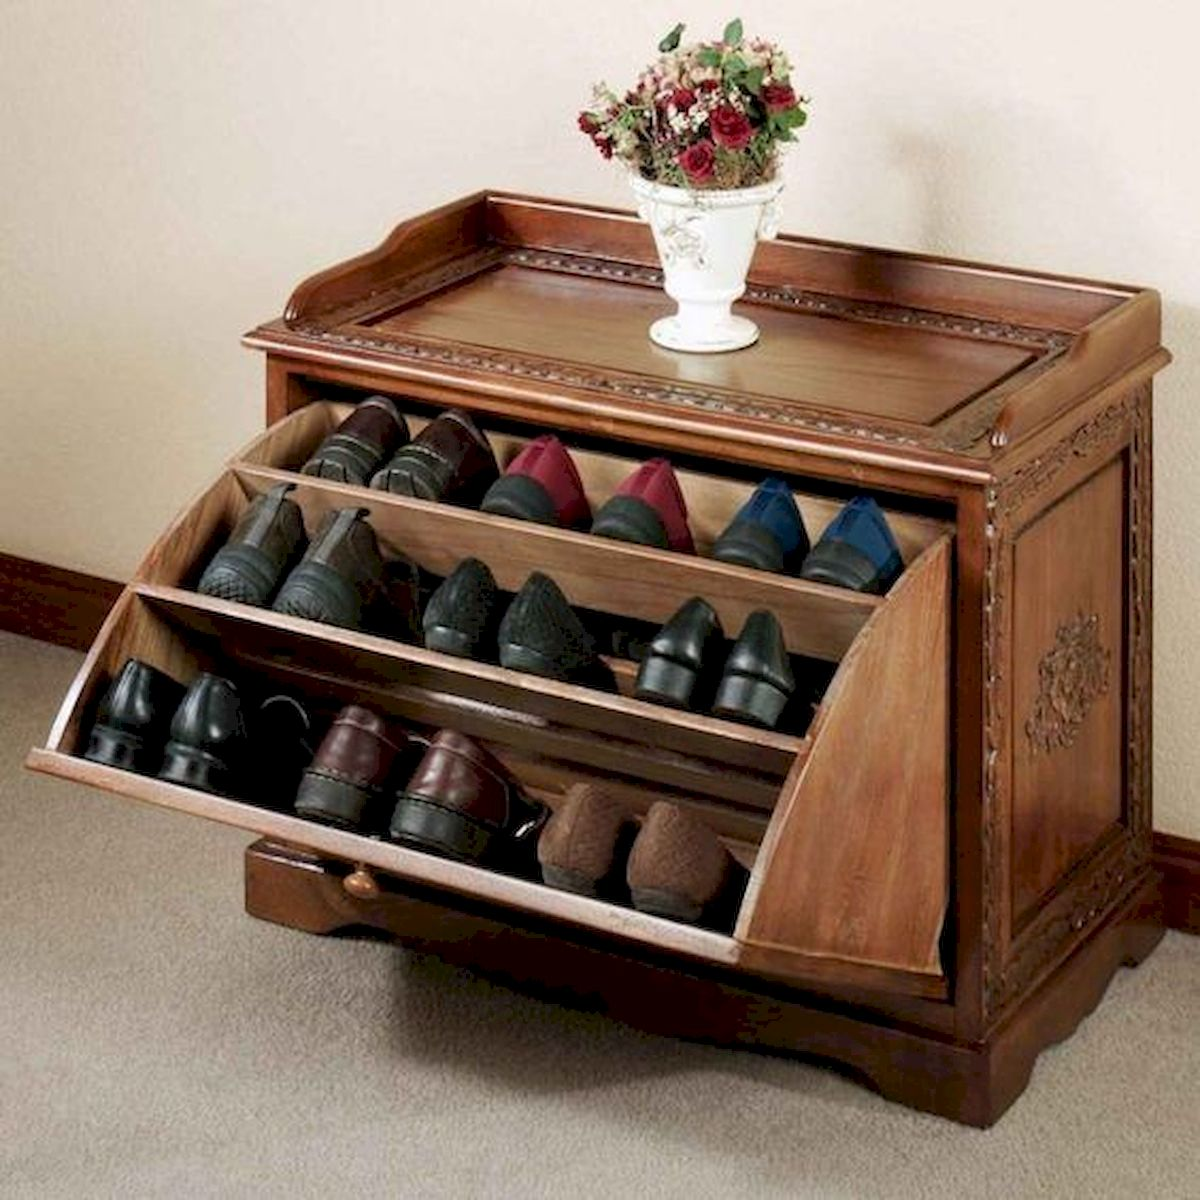 50 Fantastic DIY Shoes Rack Design Ideas (4)